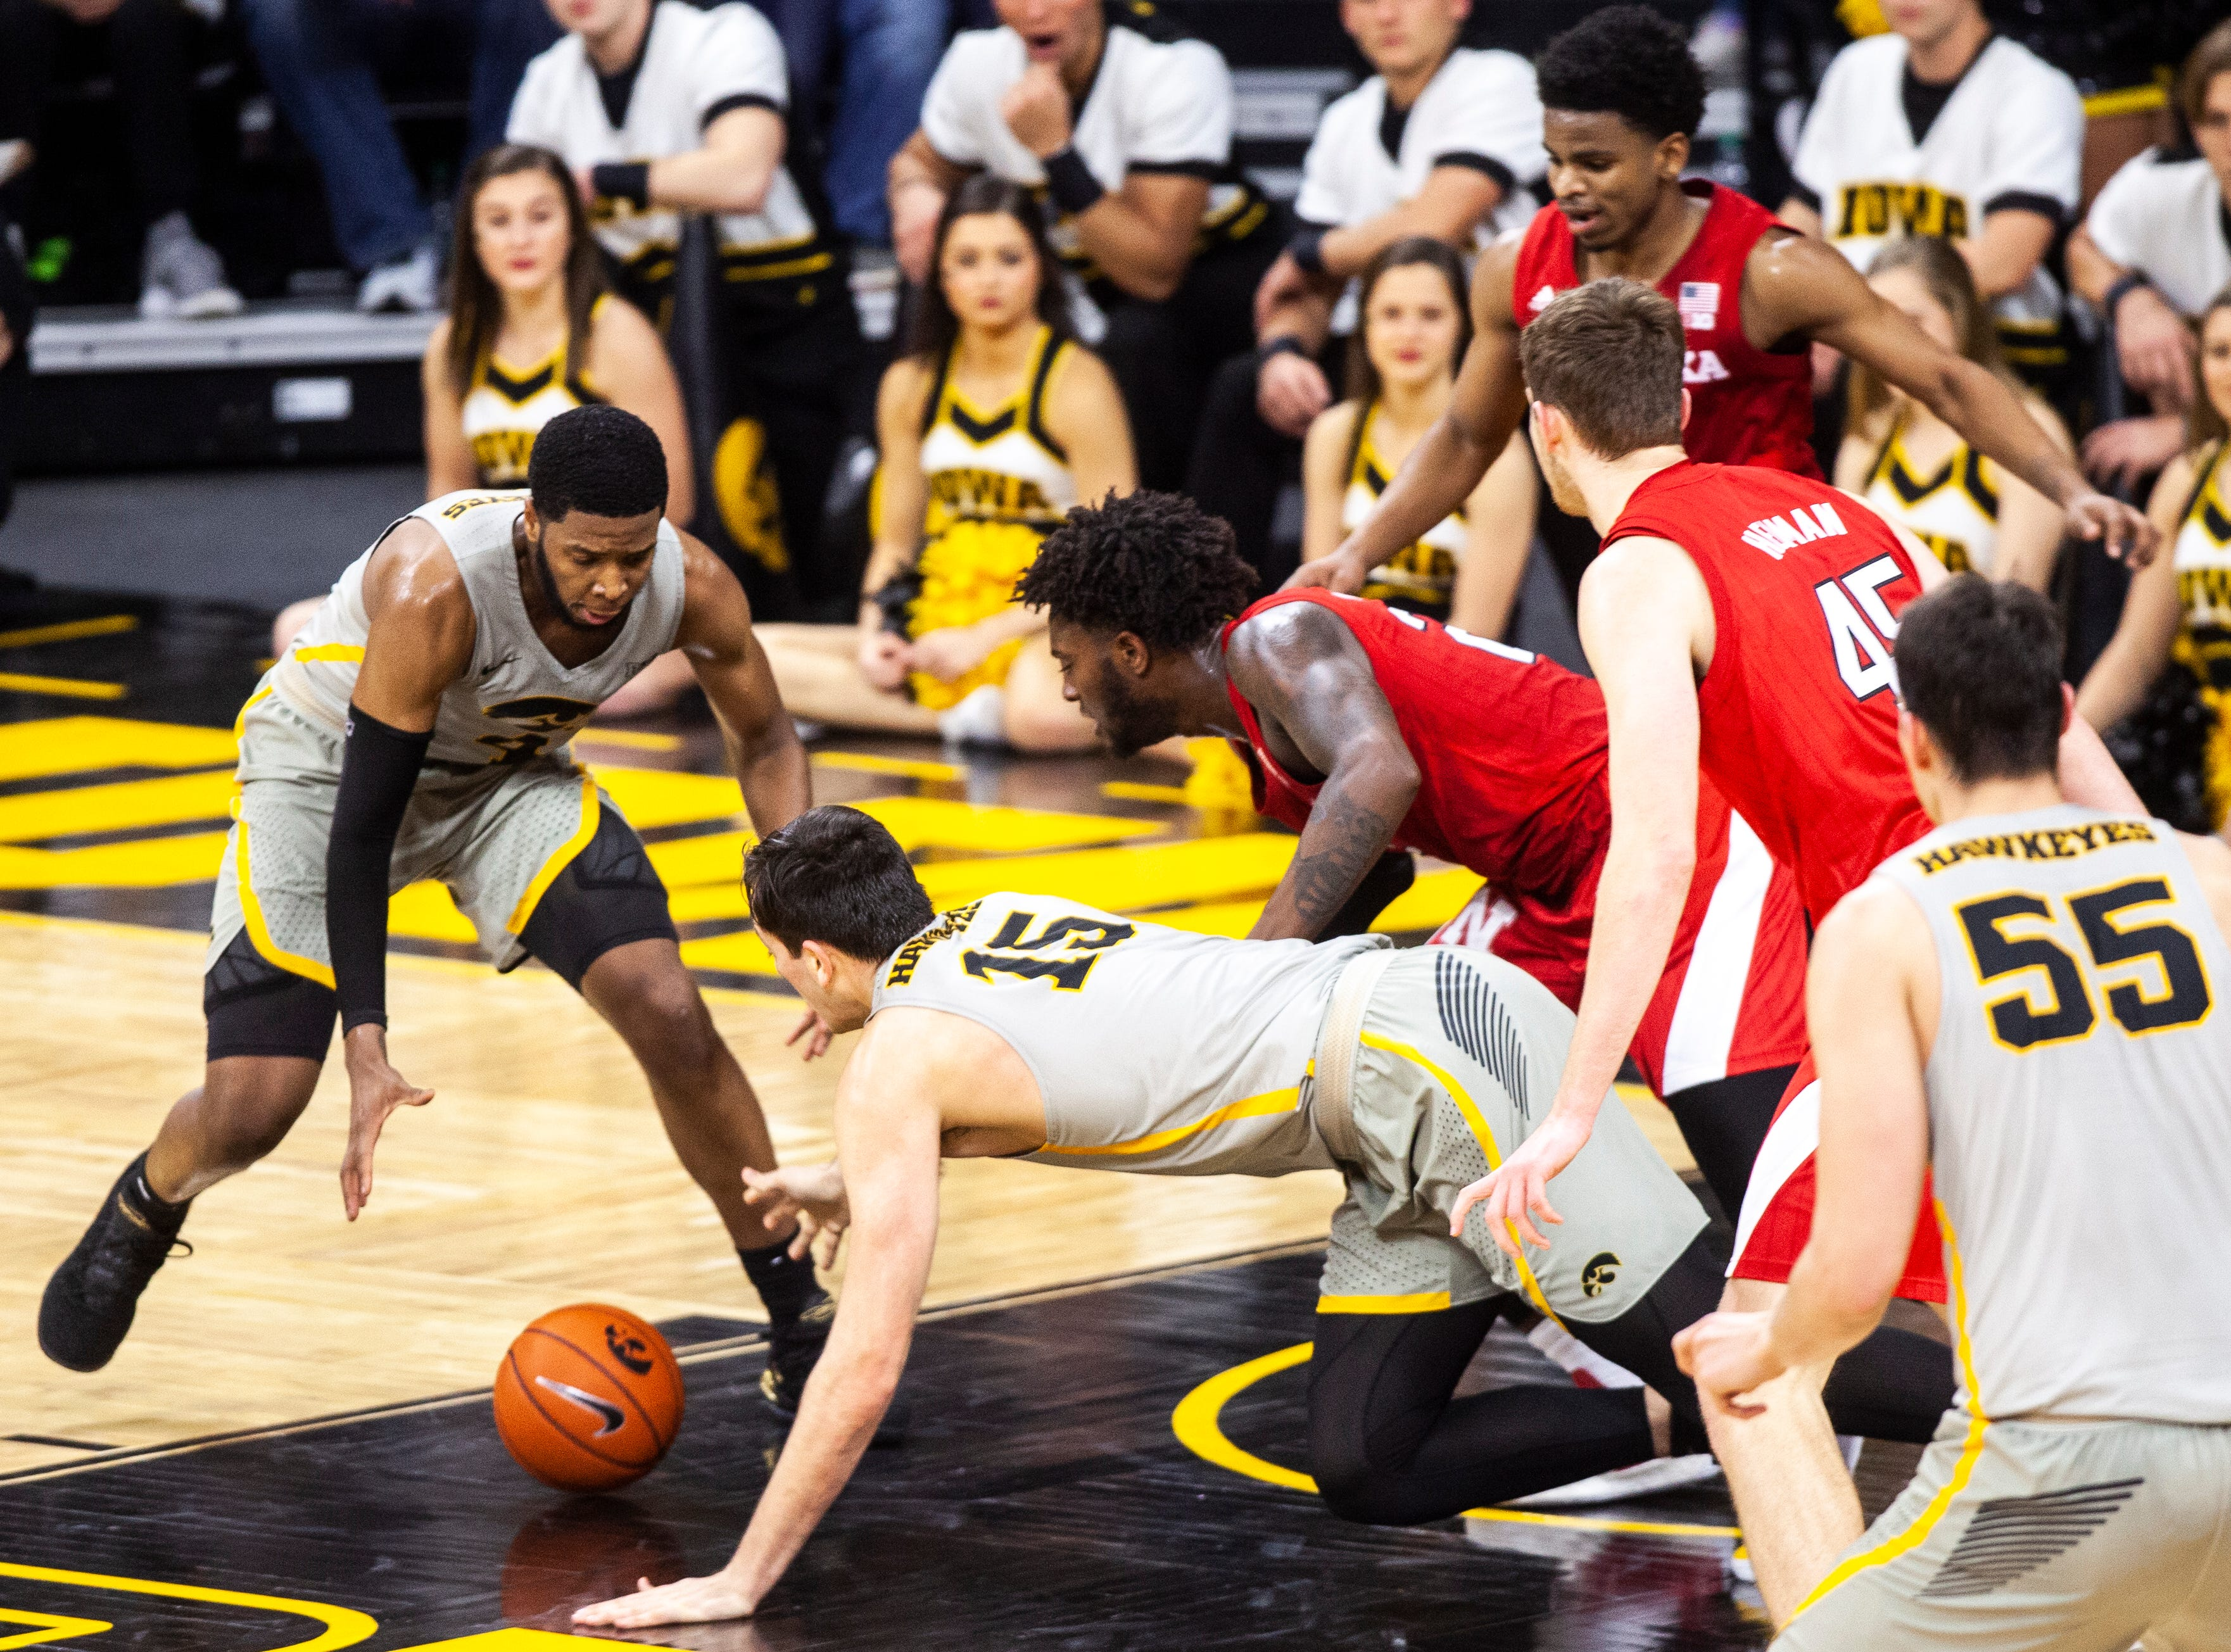 Iowa guard Isaiah Moss (4) and Iowa forward Ryan Kriener (15) dive for a loose ball during a NCAA Big Ten Conference men's basketball game on Sunday, Jan. 6, 2019, at the Carver-Hawkeye Arena in Iowa City, Iowa.